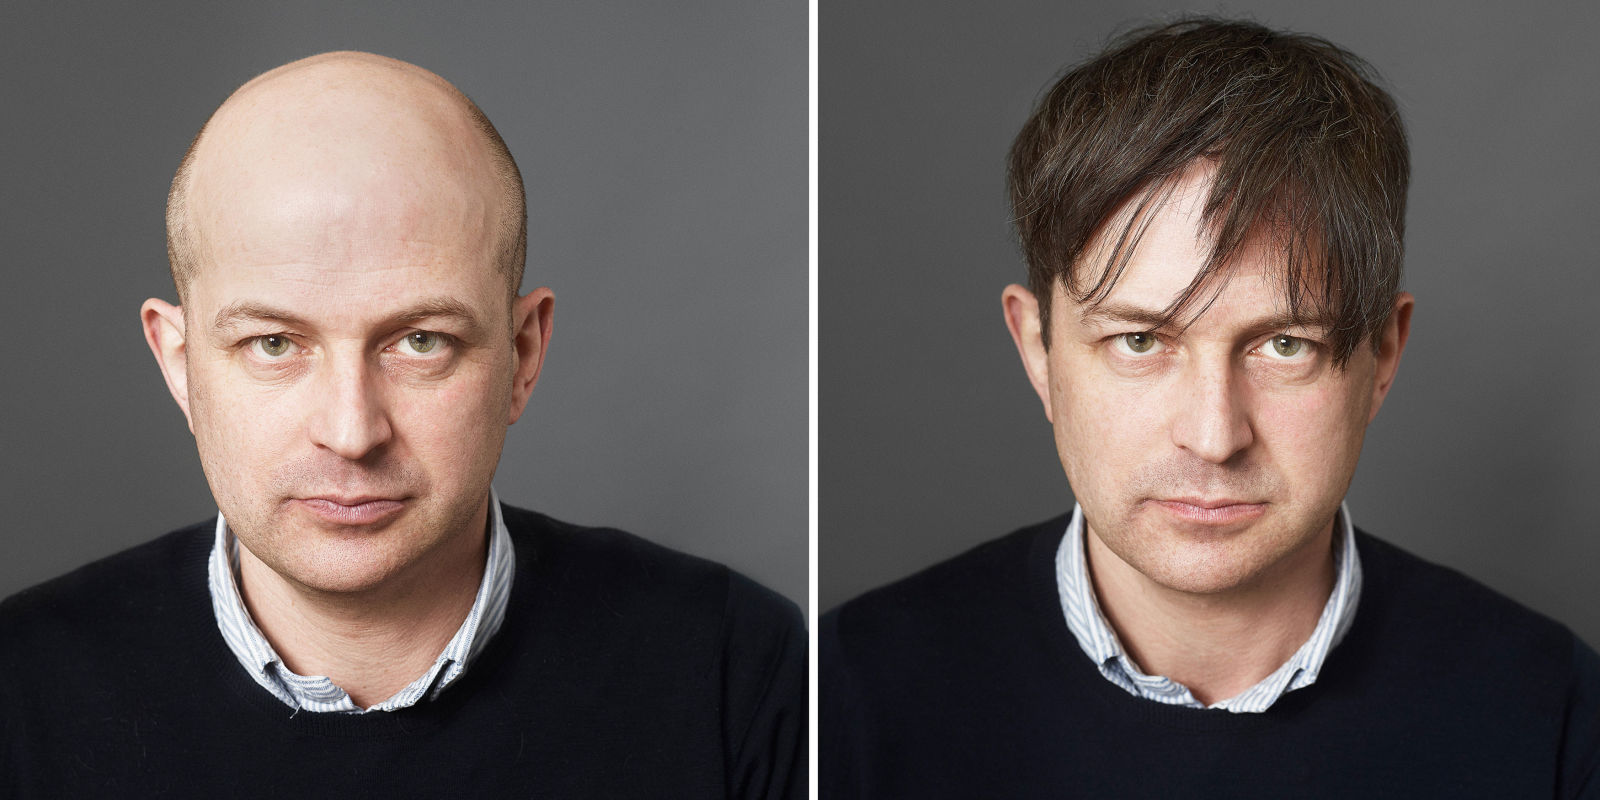 What balding vs shaved head her